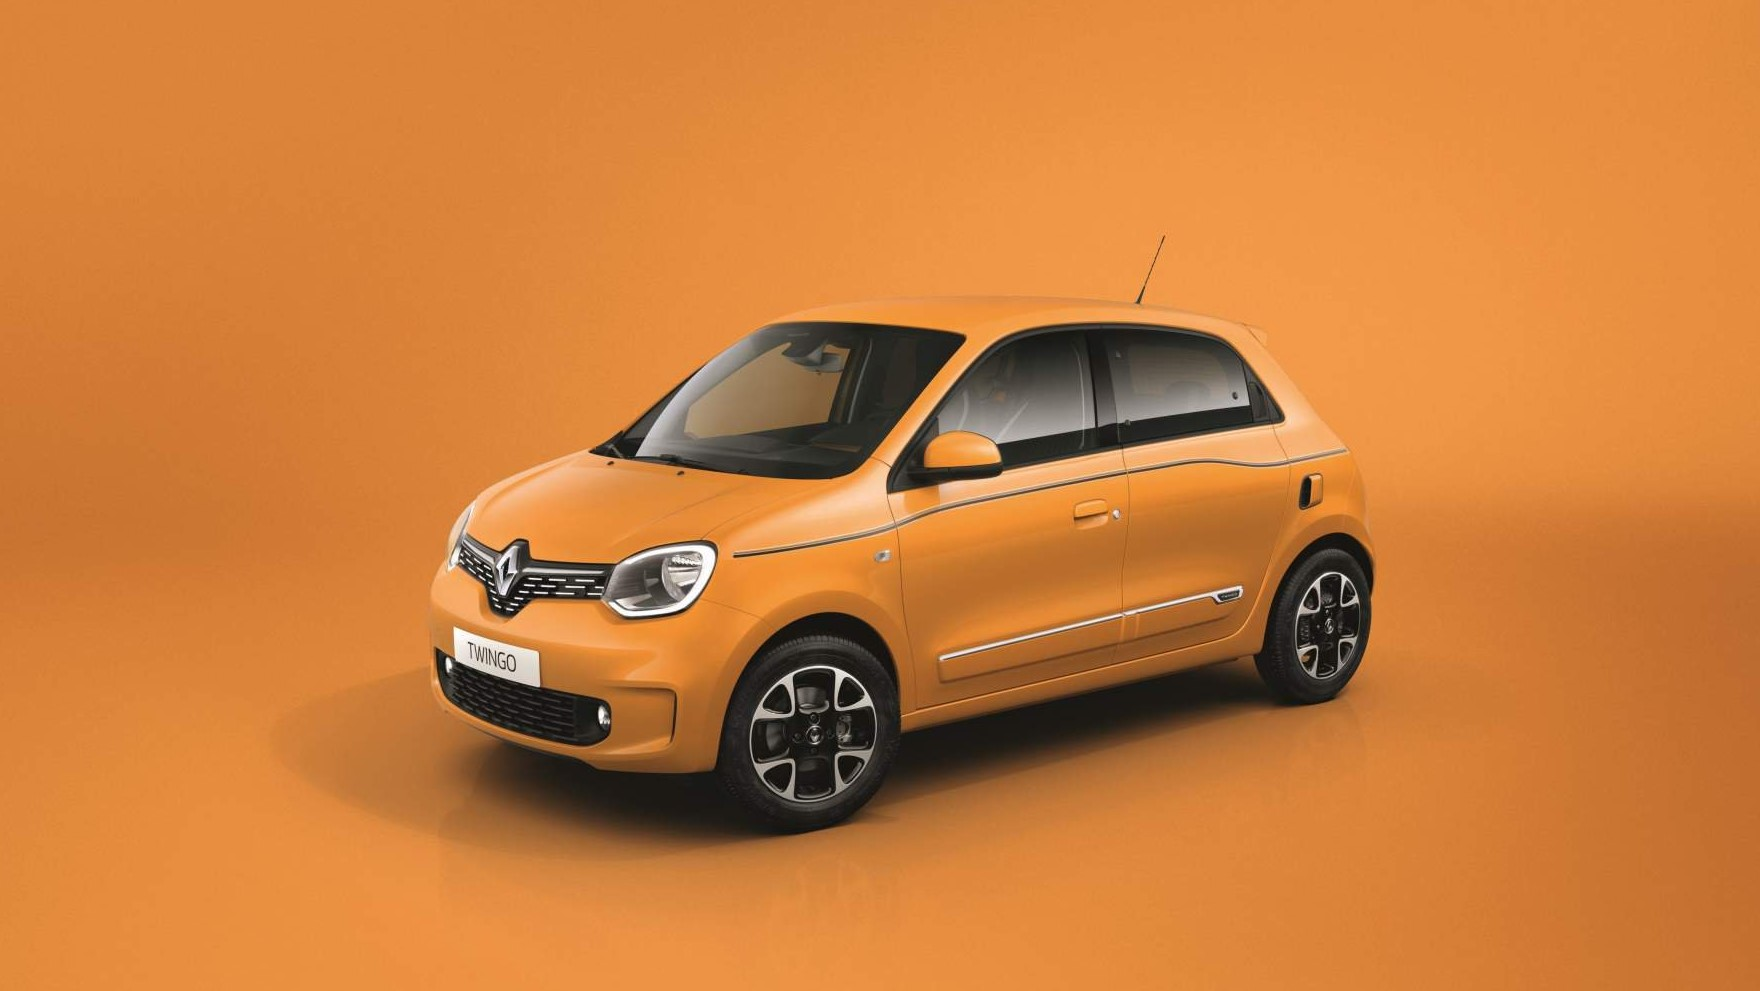 435a13ee-2019-renault-twingo-facelift-17